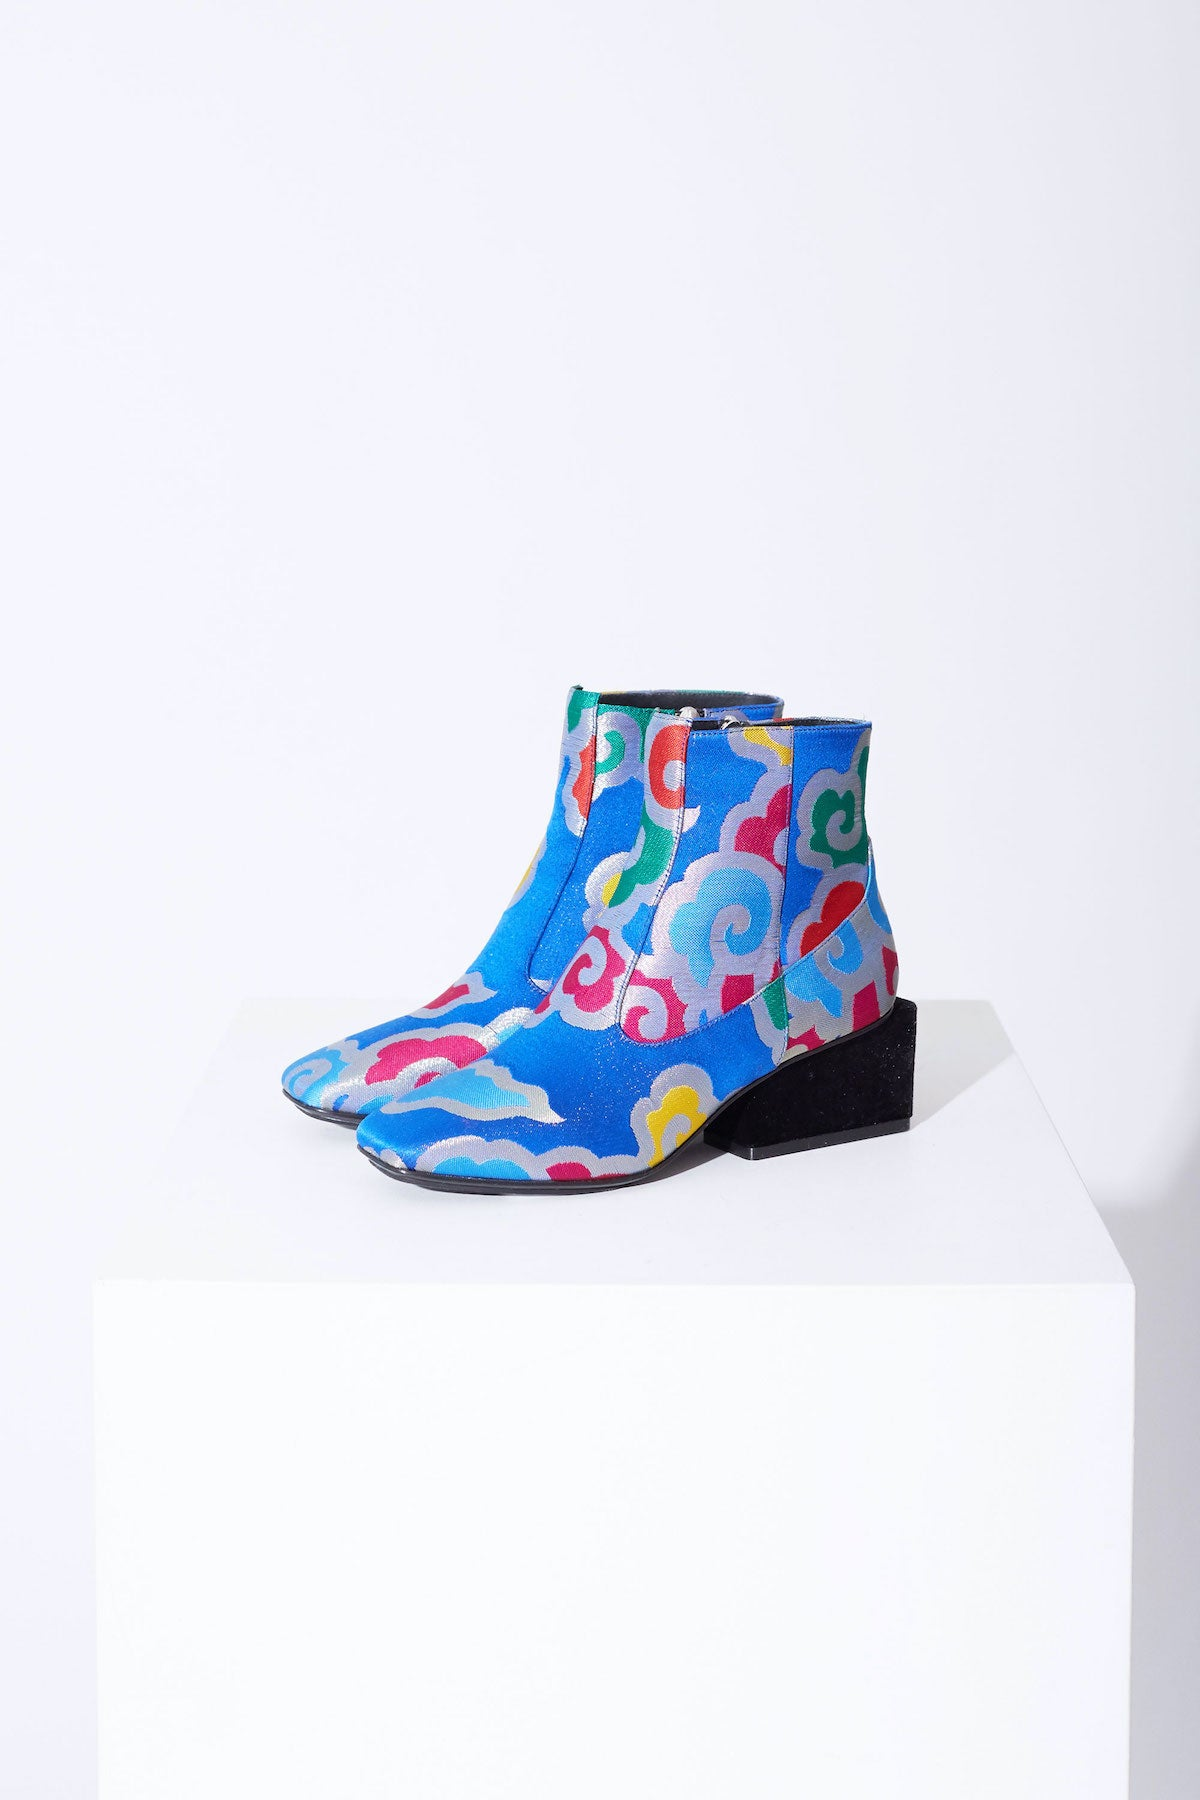 Exclusive Kurt Lyle Regina Boot in Cloud Jacquard